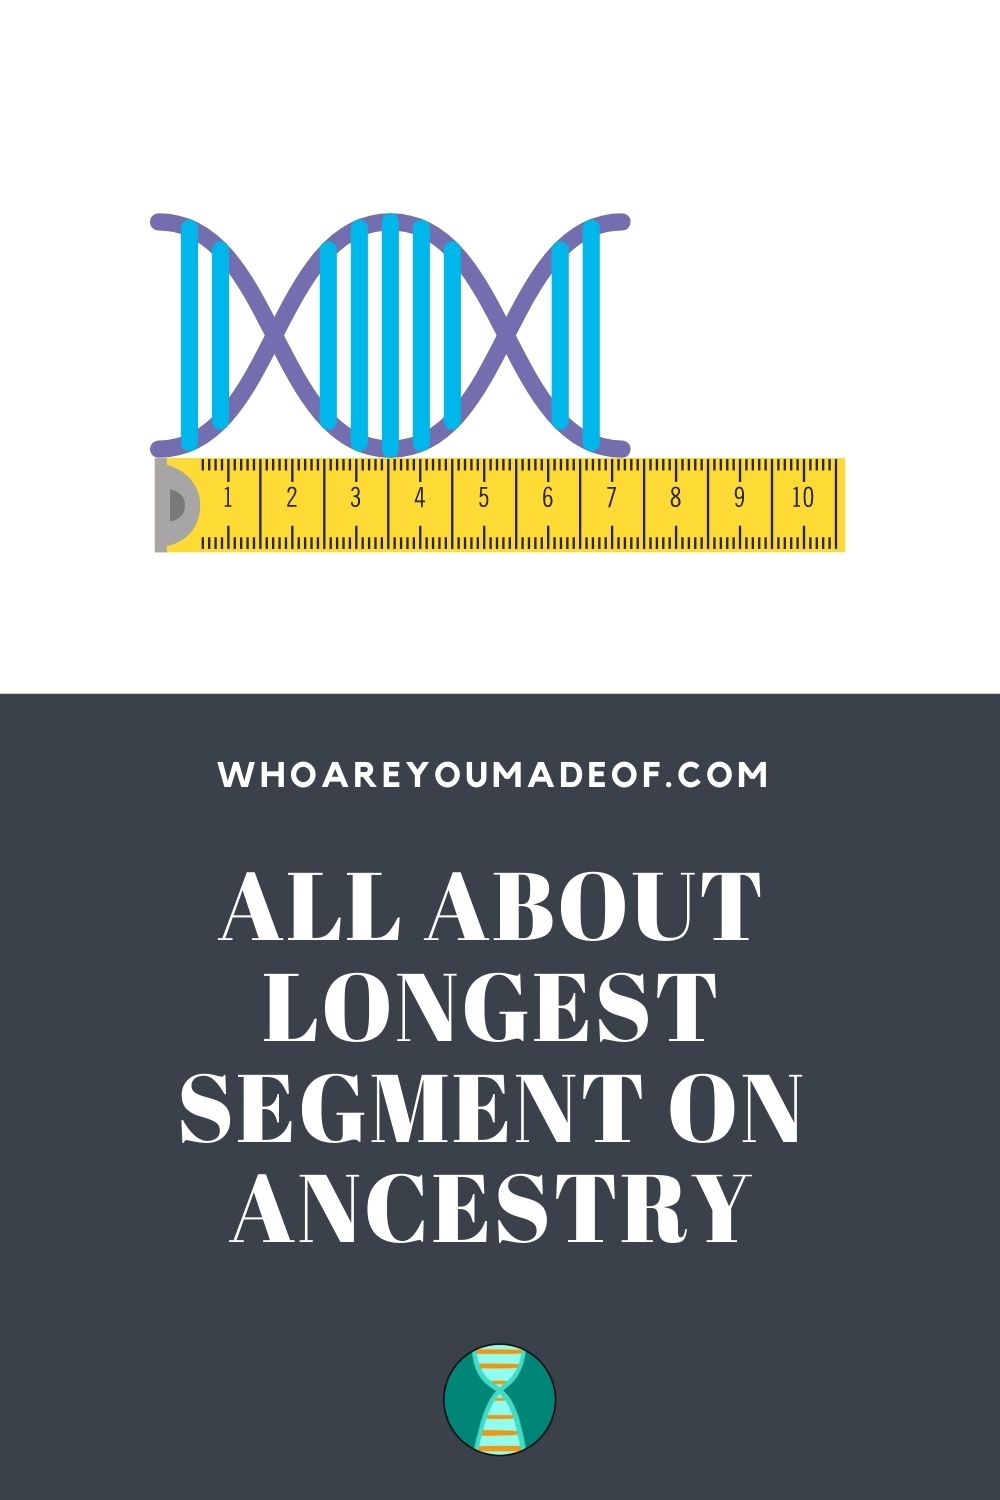 All about the longest segment on Ancestry Pinterest Image with ruler and DNA graphic